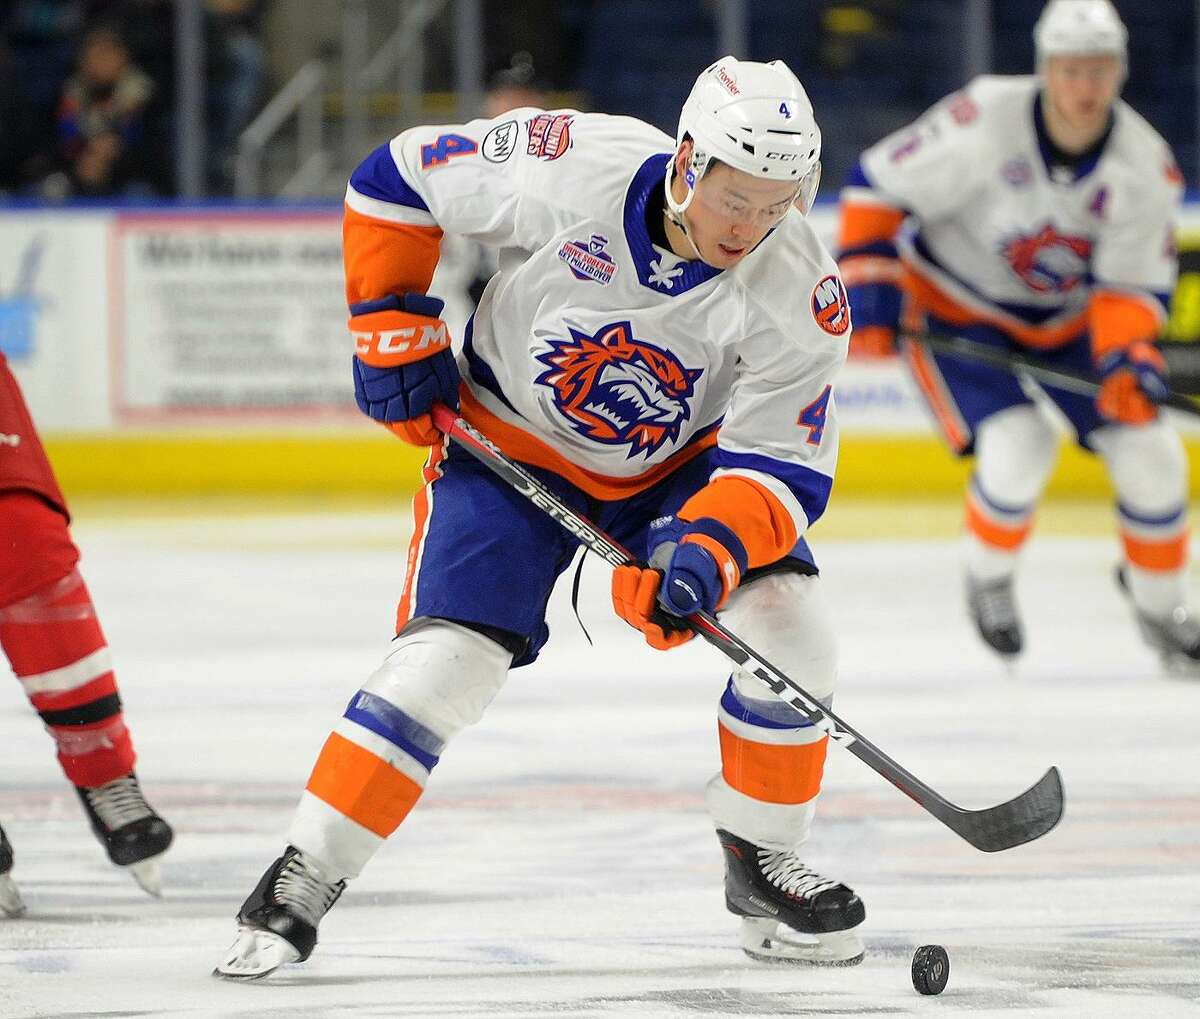 Mitch Vande Sompel of the Sound Tigers is trying to keep up his intensity and playing well in all phases of the game.